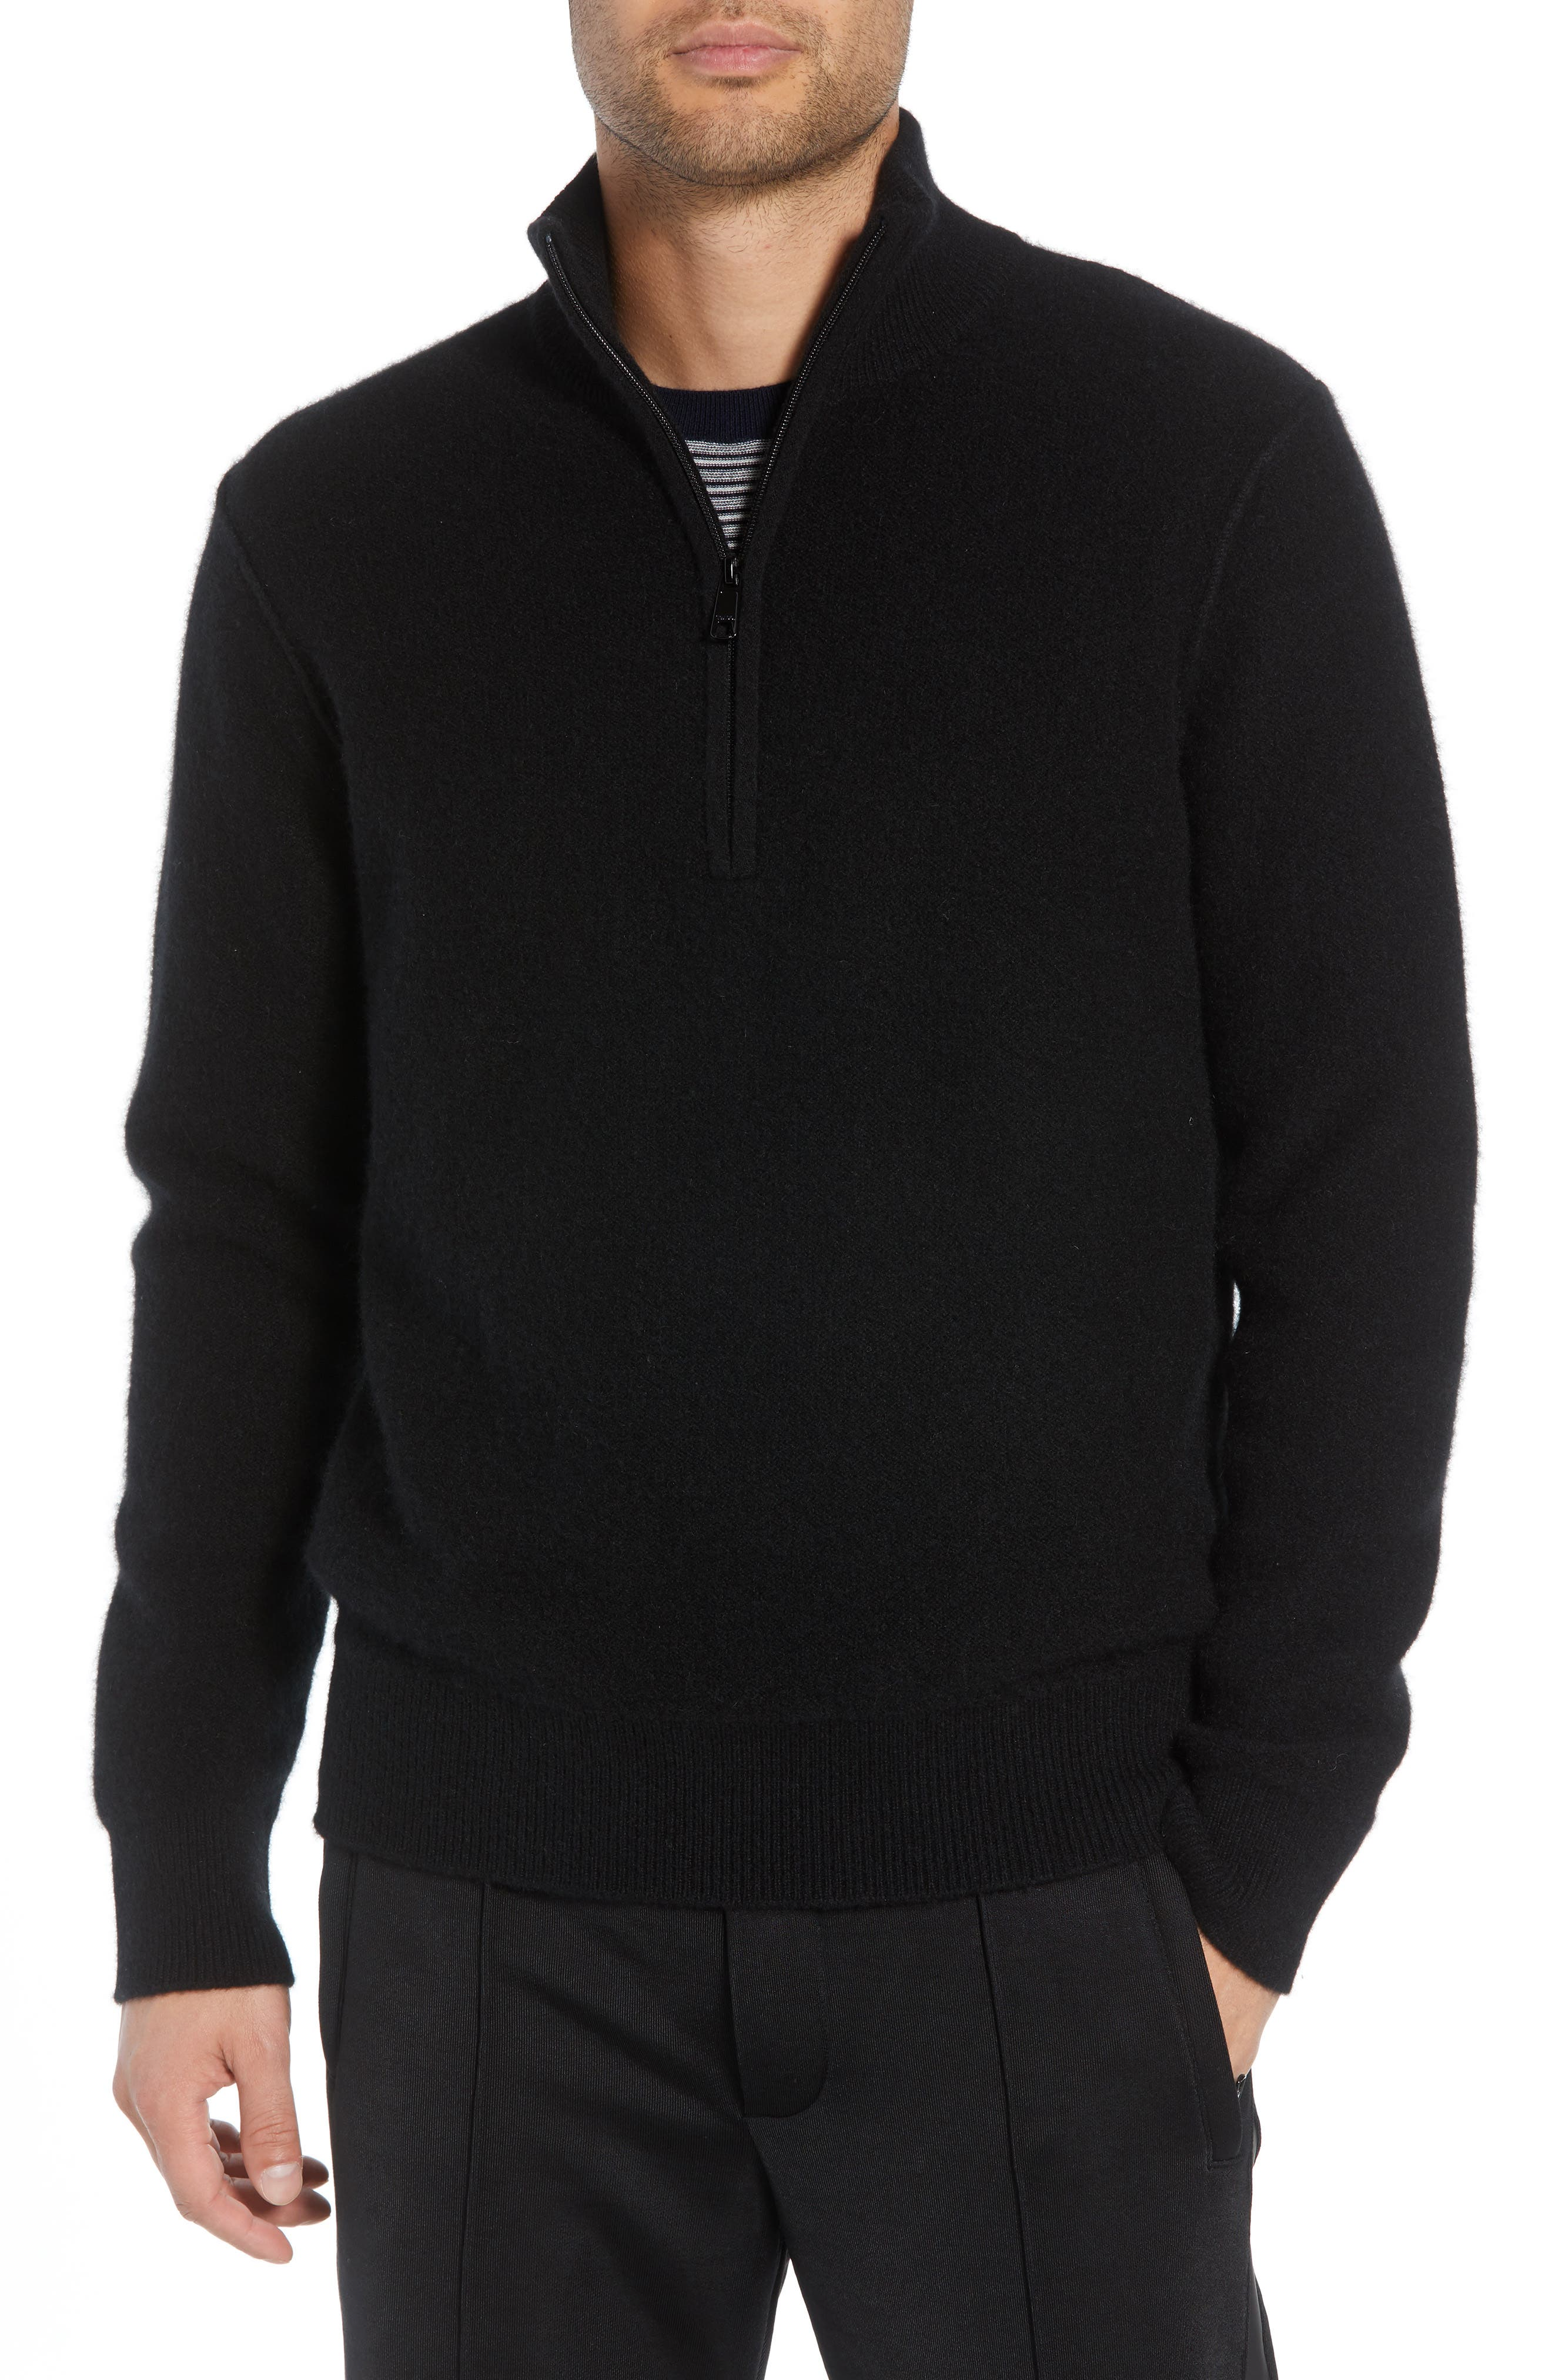 Regular Fit Half Zip Cashmere Sweater,                             Main thumbnail 1, color,                             001